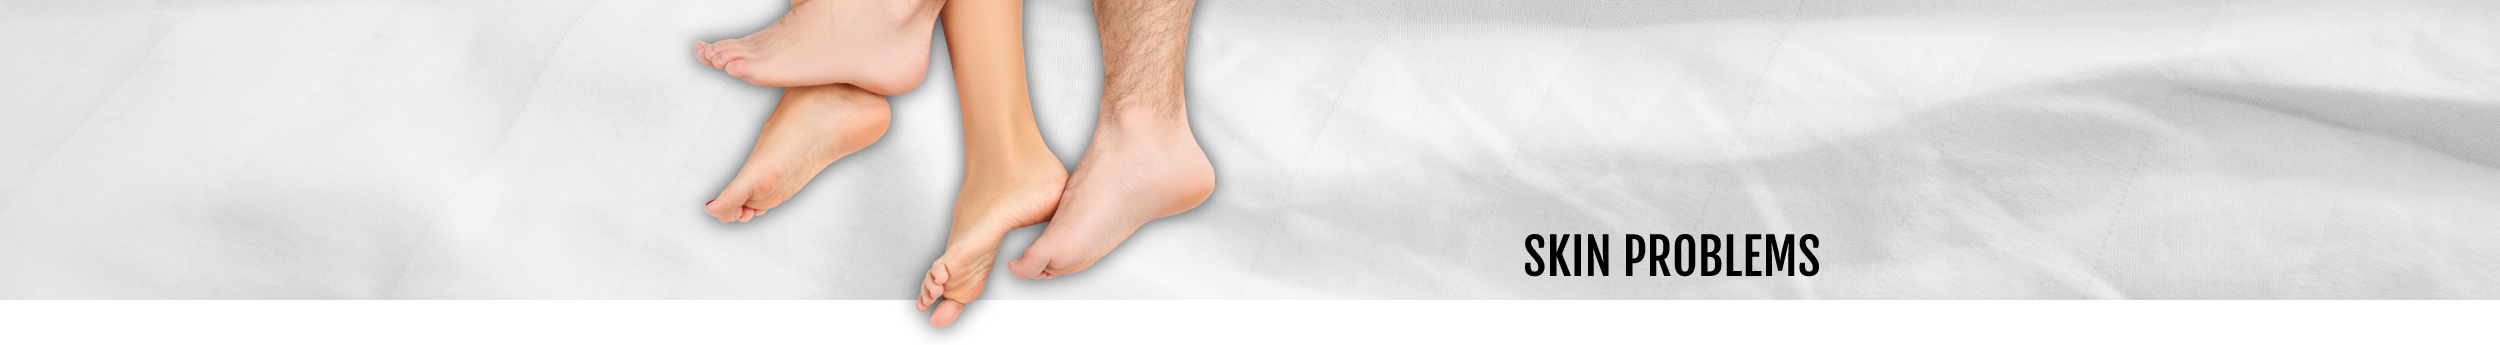 Skin Problems header for the Walk IN Foot Clinic in central London